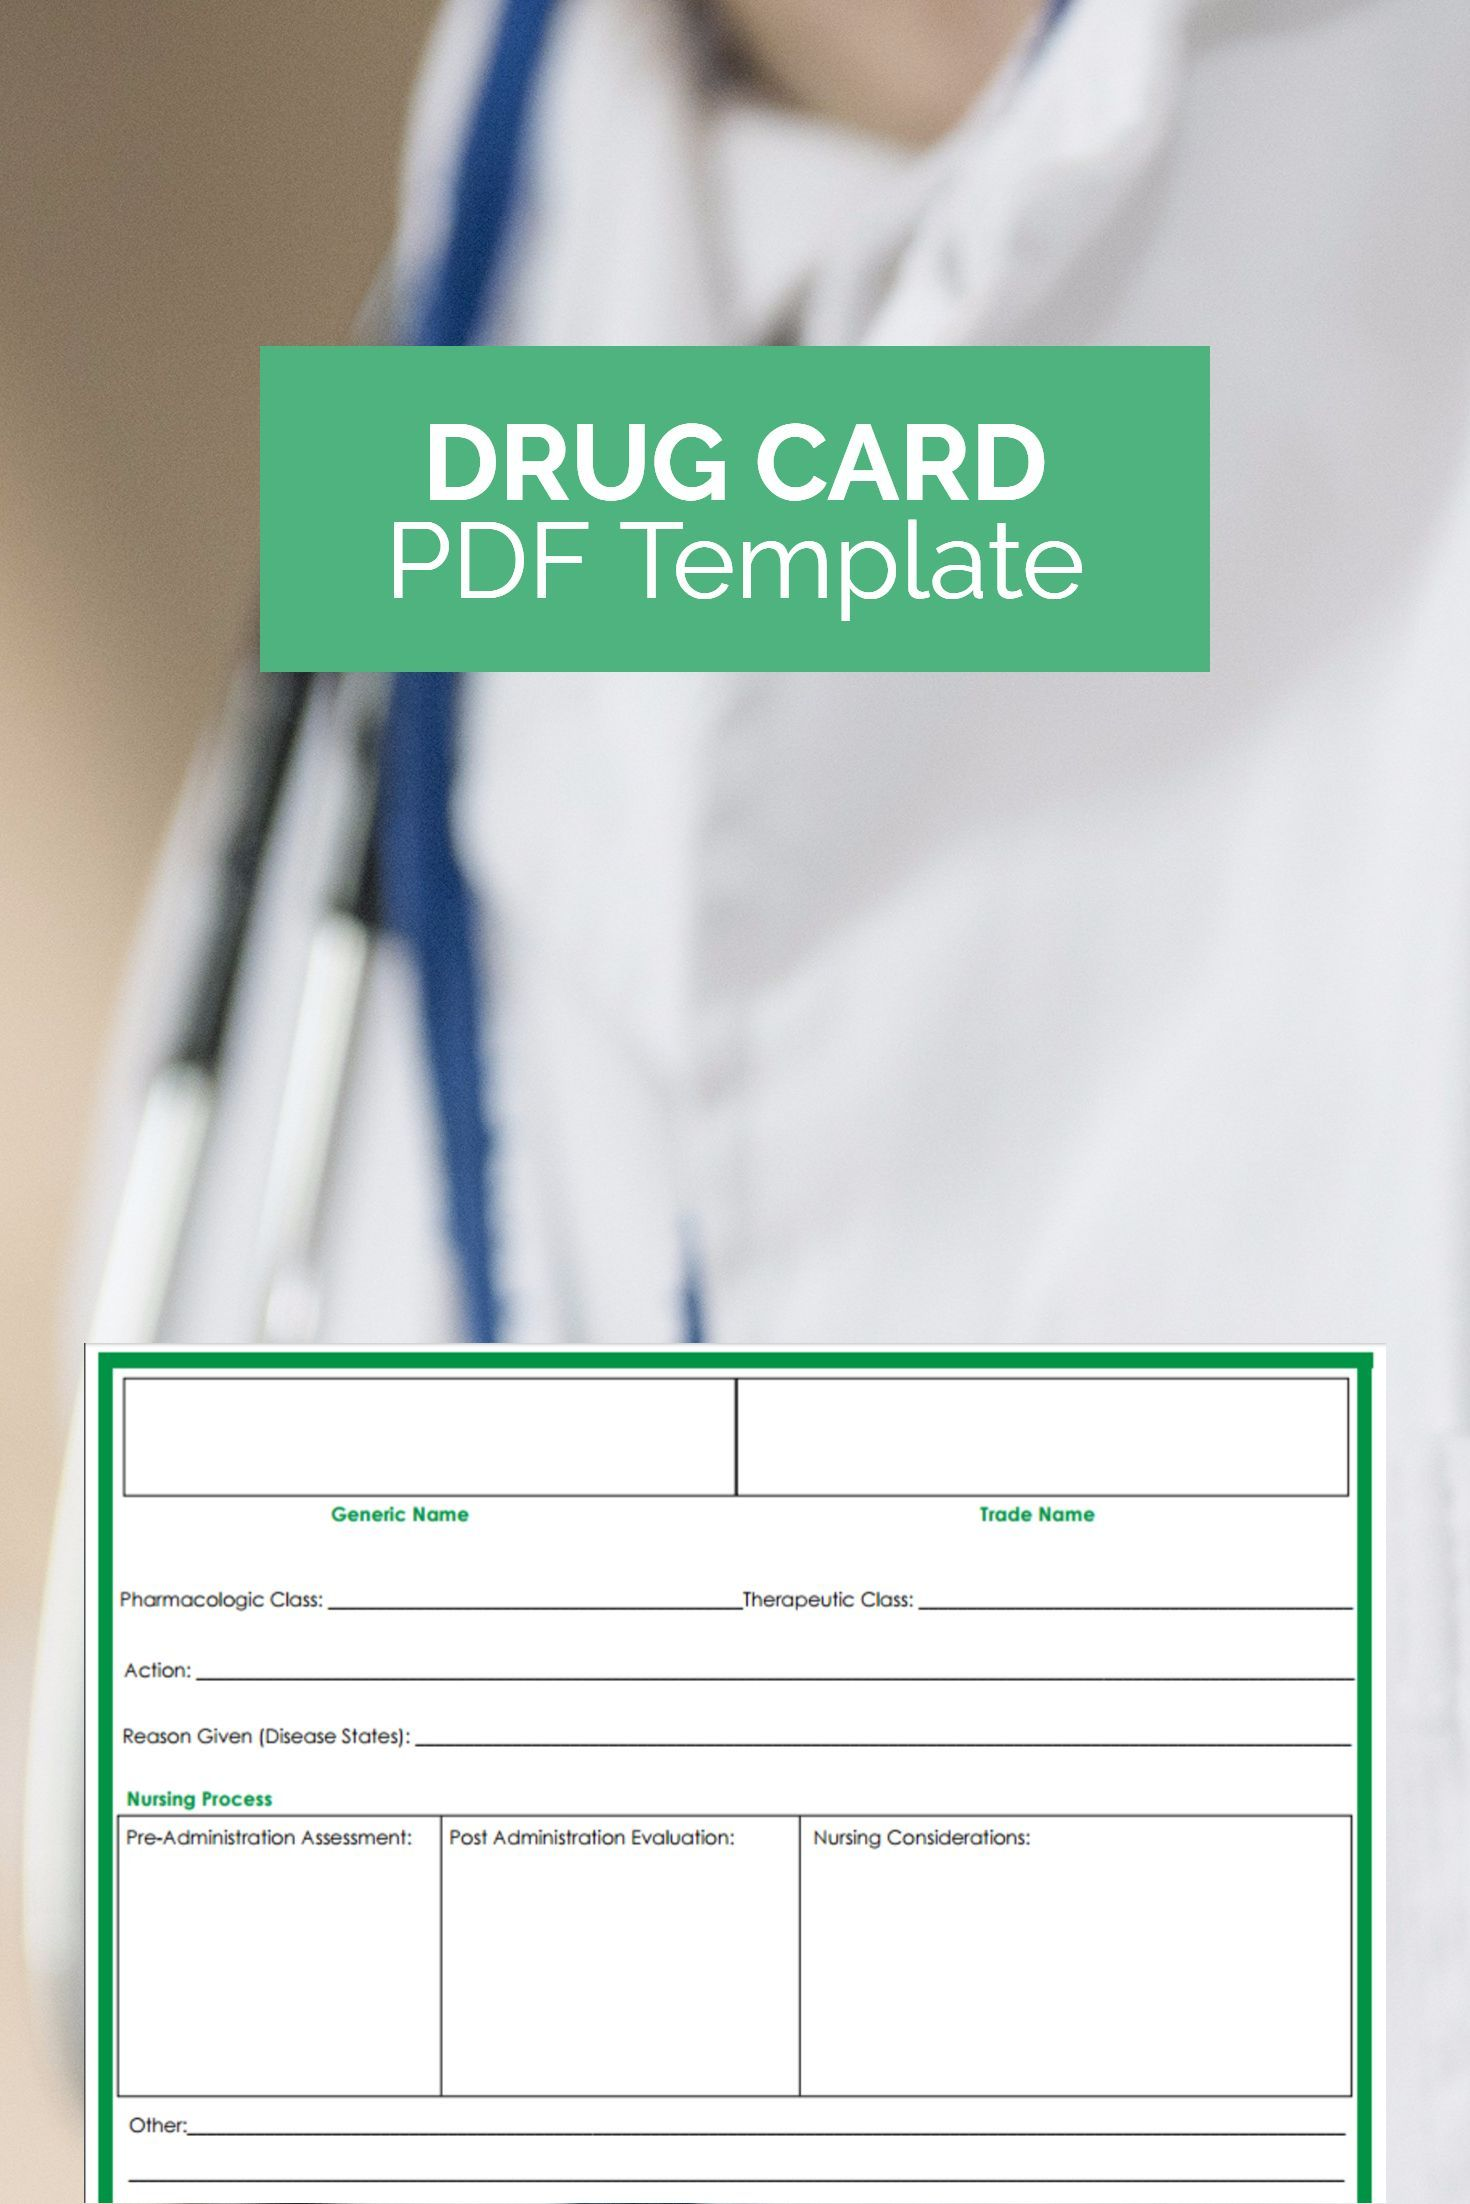 Want A Free Drug Card Template That Can Make Studying Much Within Pharmacology Drug Card Template Cumed Or Drug Cards Pharmacology Pharmacology Nursing Study